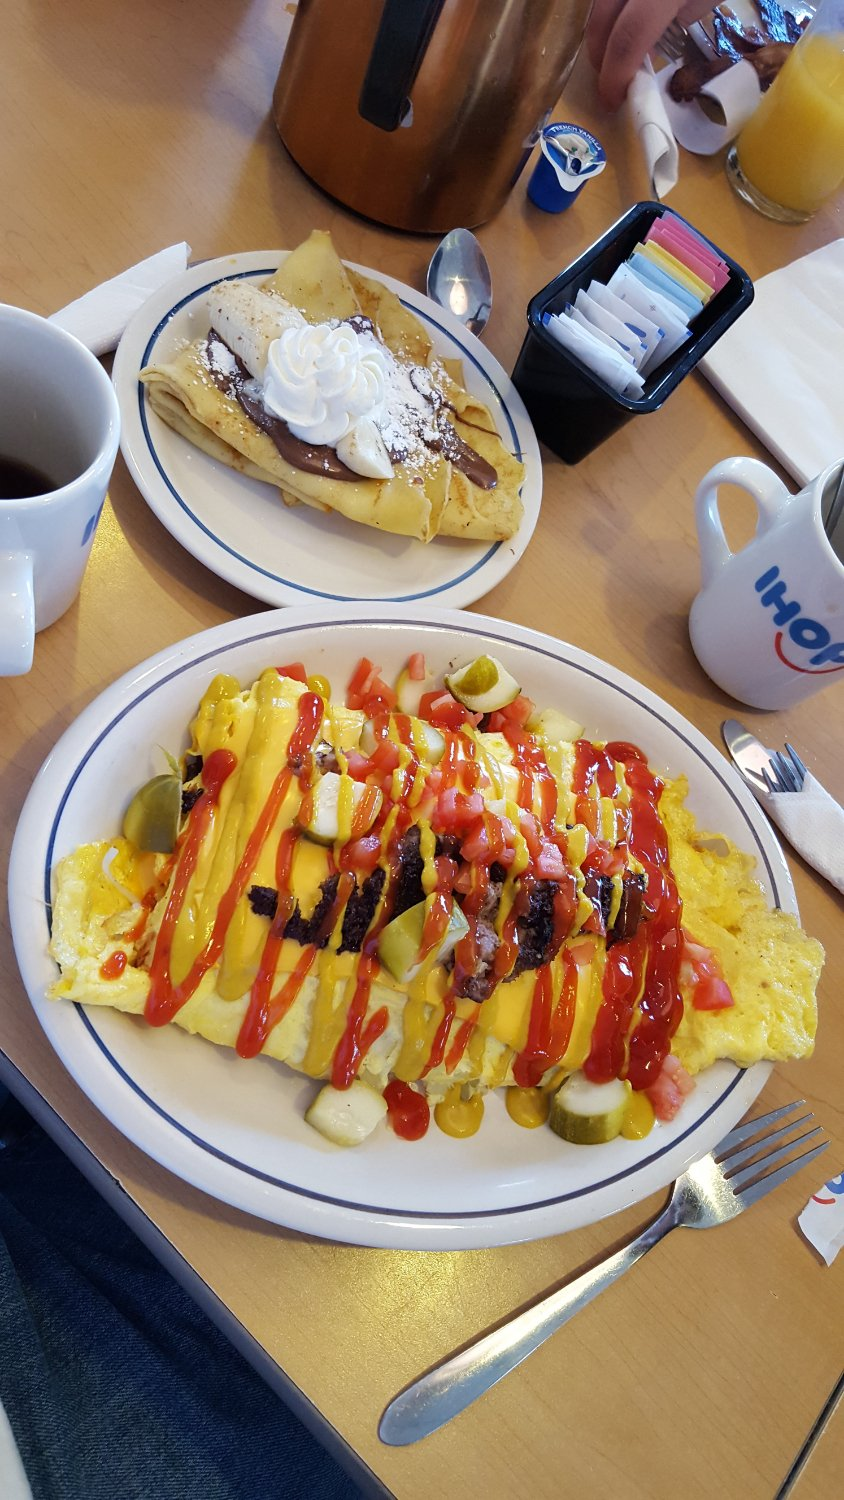 Cheeseburger omelette and nutella crepes - delicious!